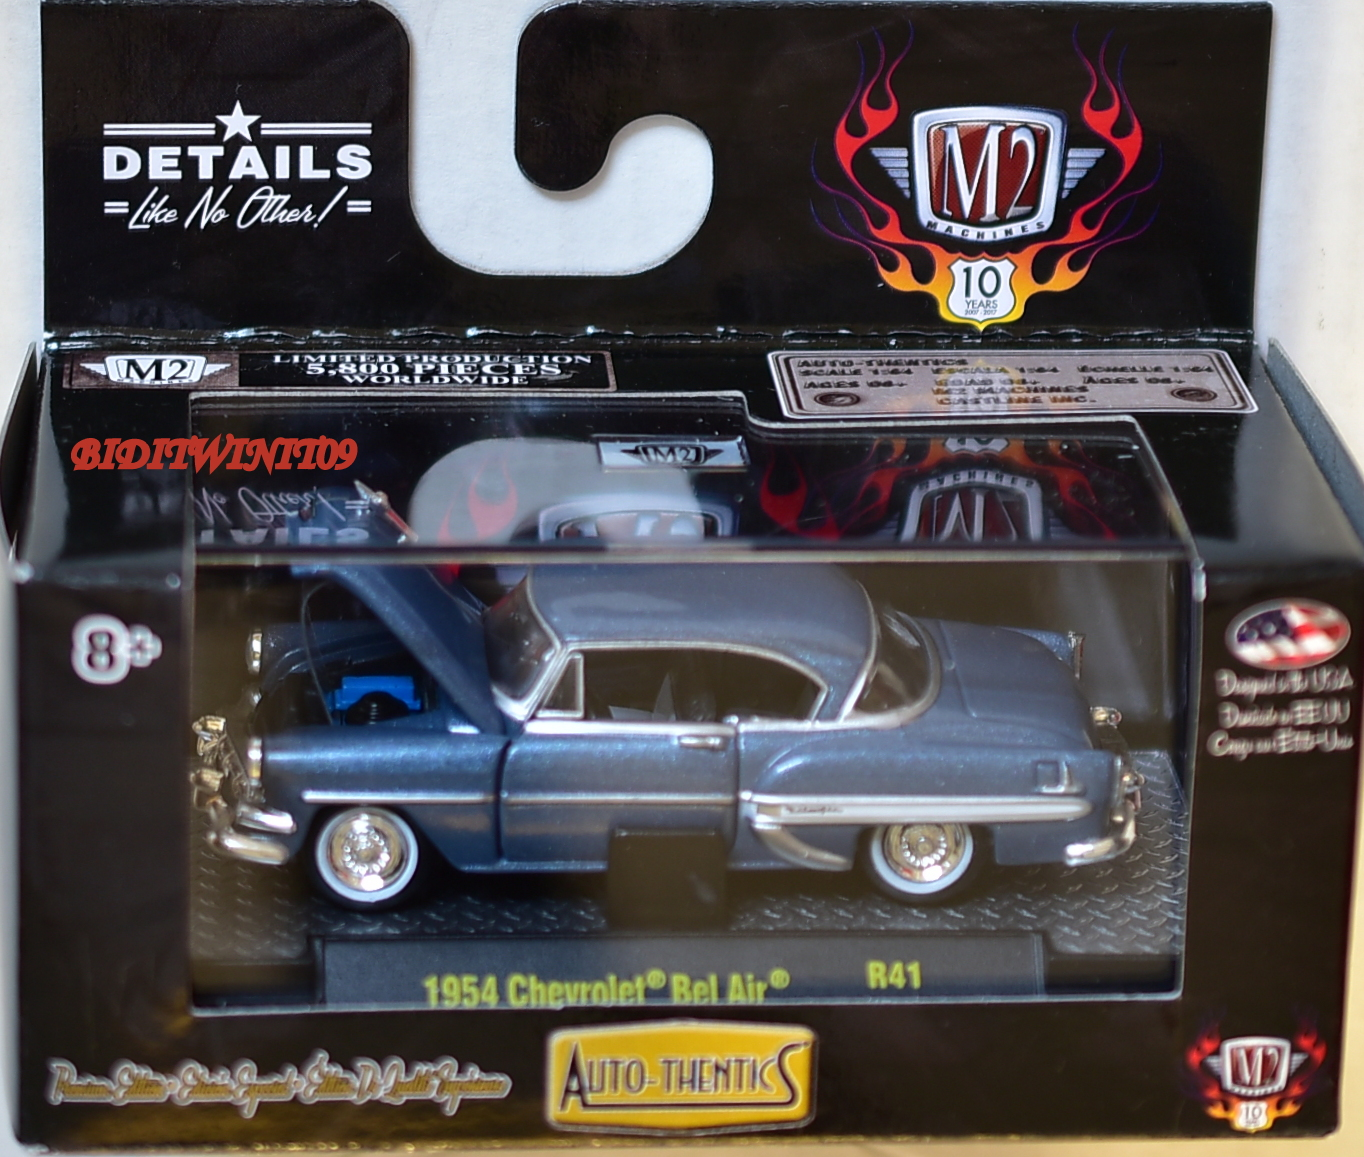 M2 MACHINES AUTO THENTICS 1954 CHEVROLET BEL AIR R41 E+